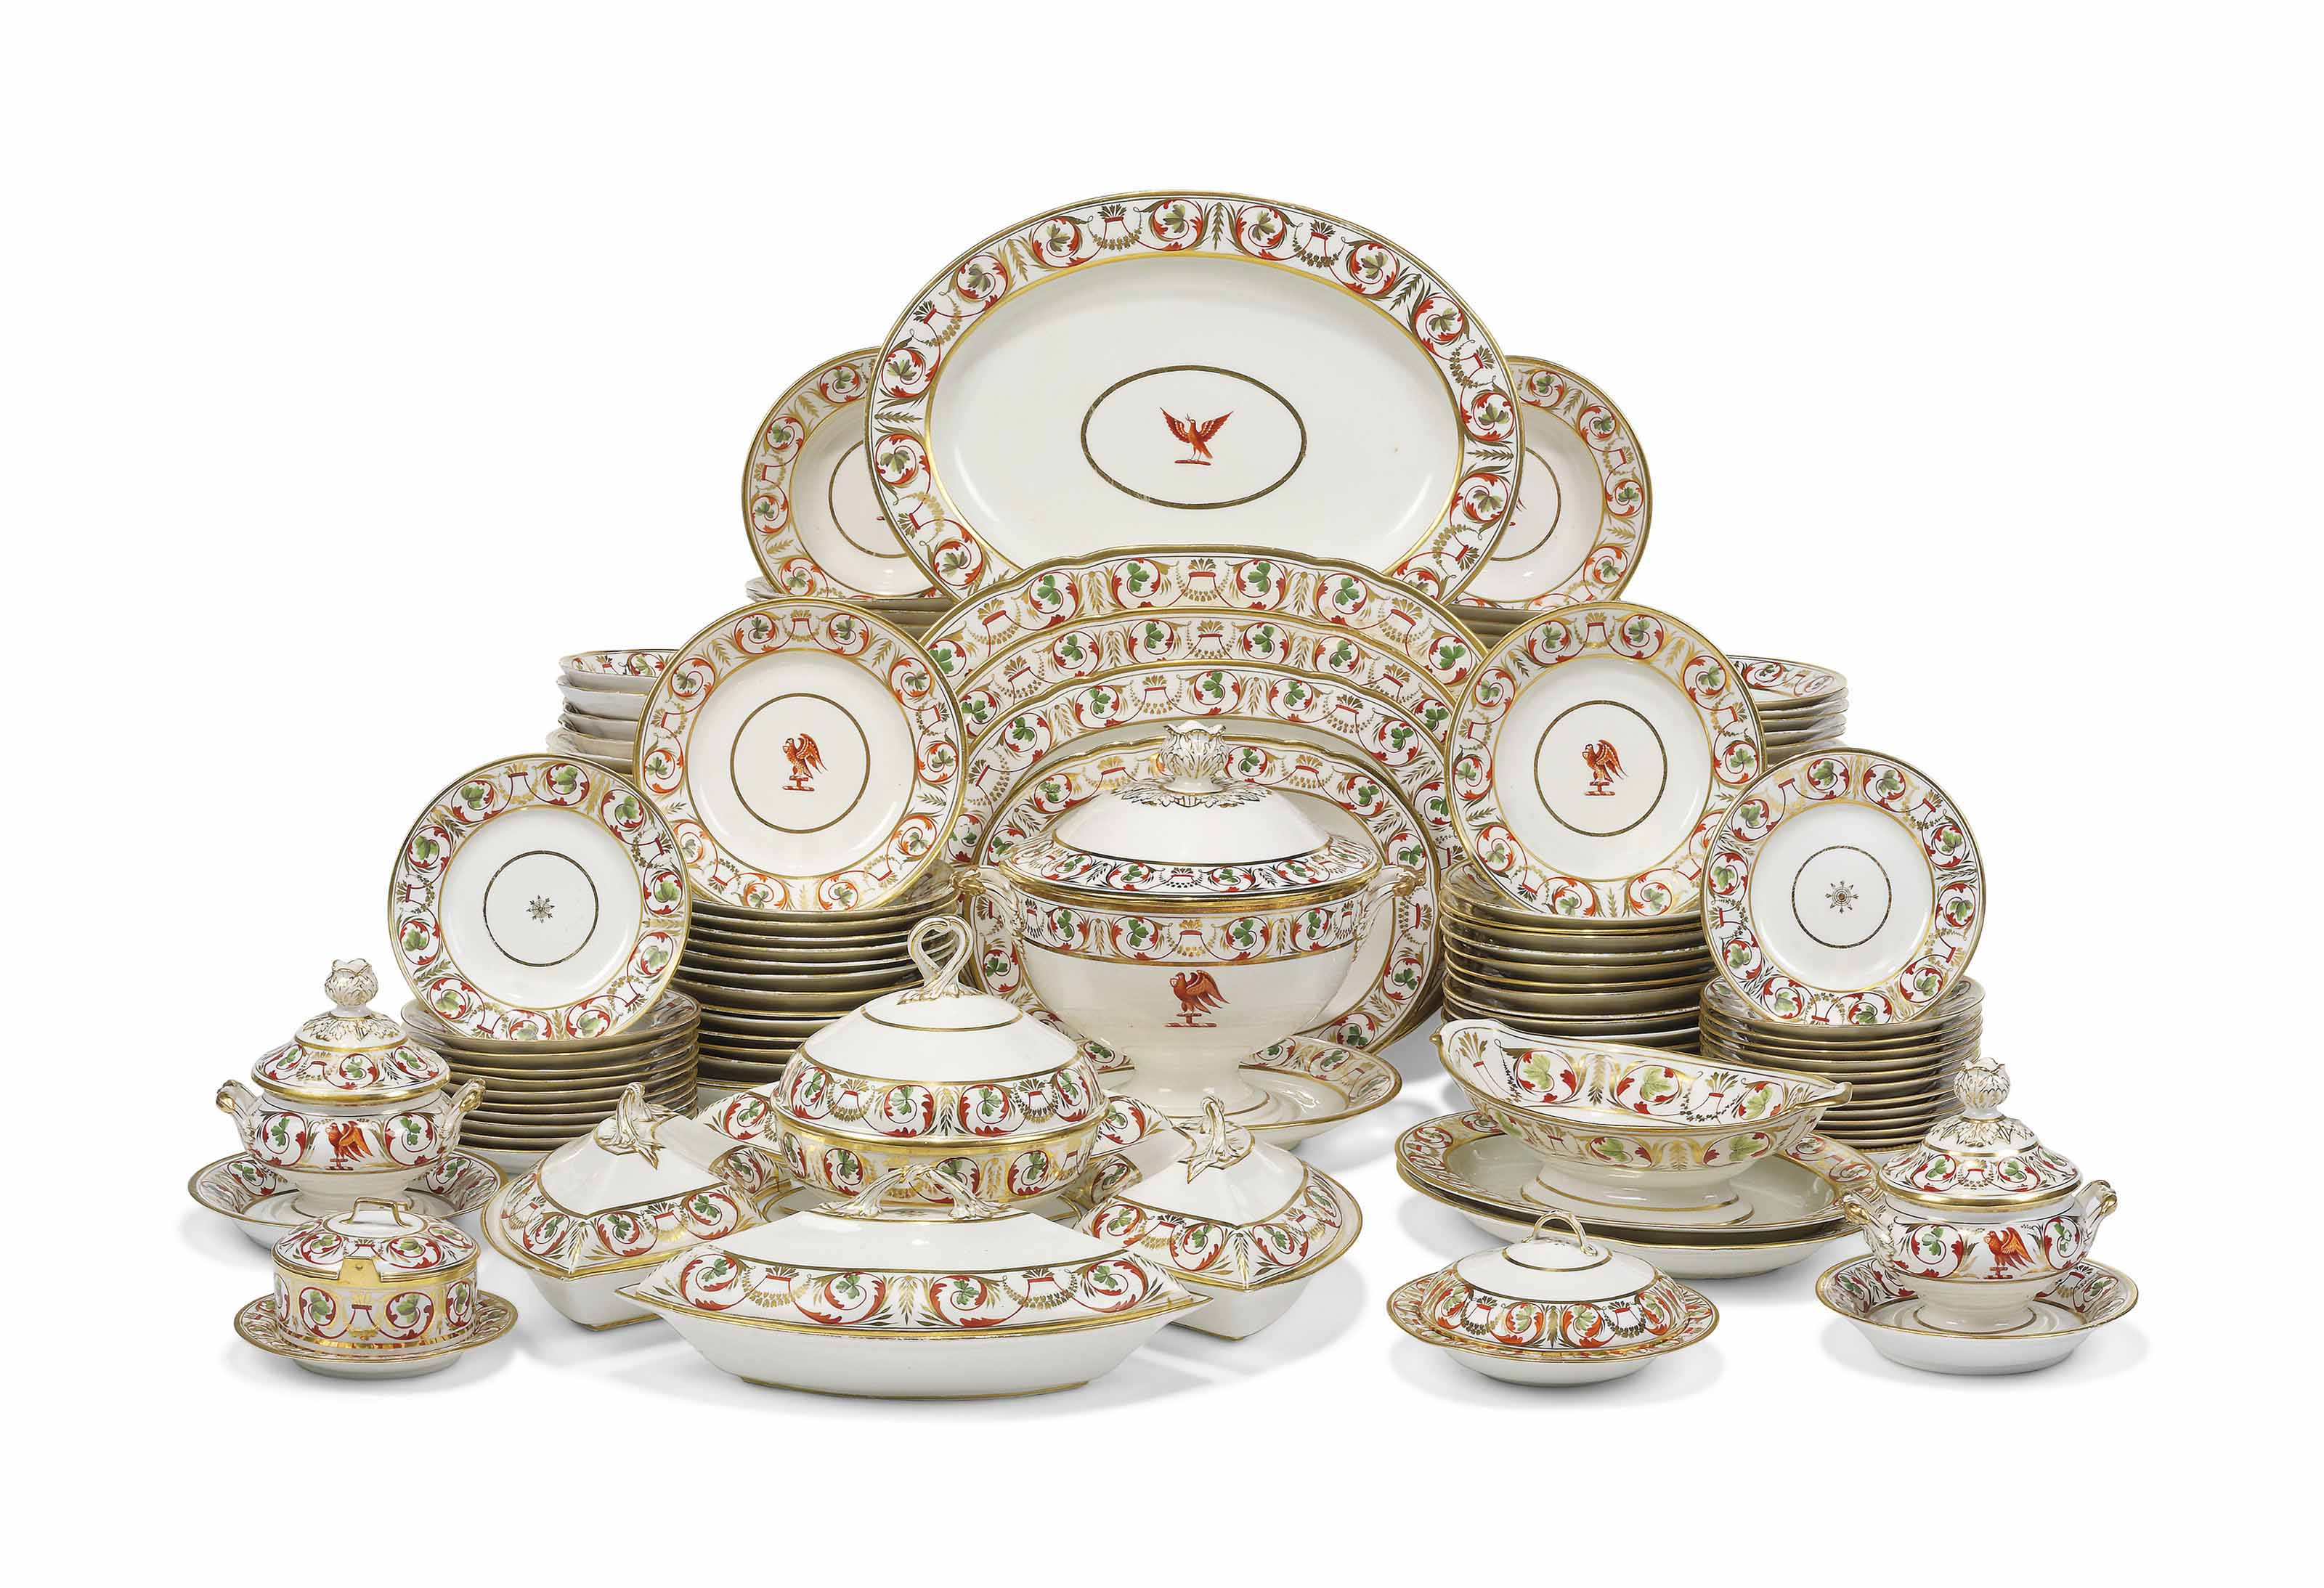 A Derby porcelain composite part dinner service, circa 1815. 19¾ in (50.2  cm) wide, the largest platter. Sold for £16,250 on 13 June 2018 at Christie's in London